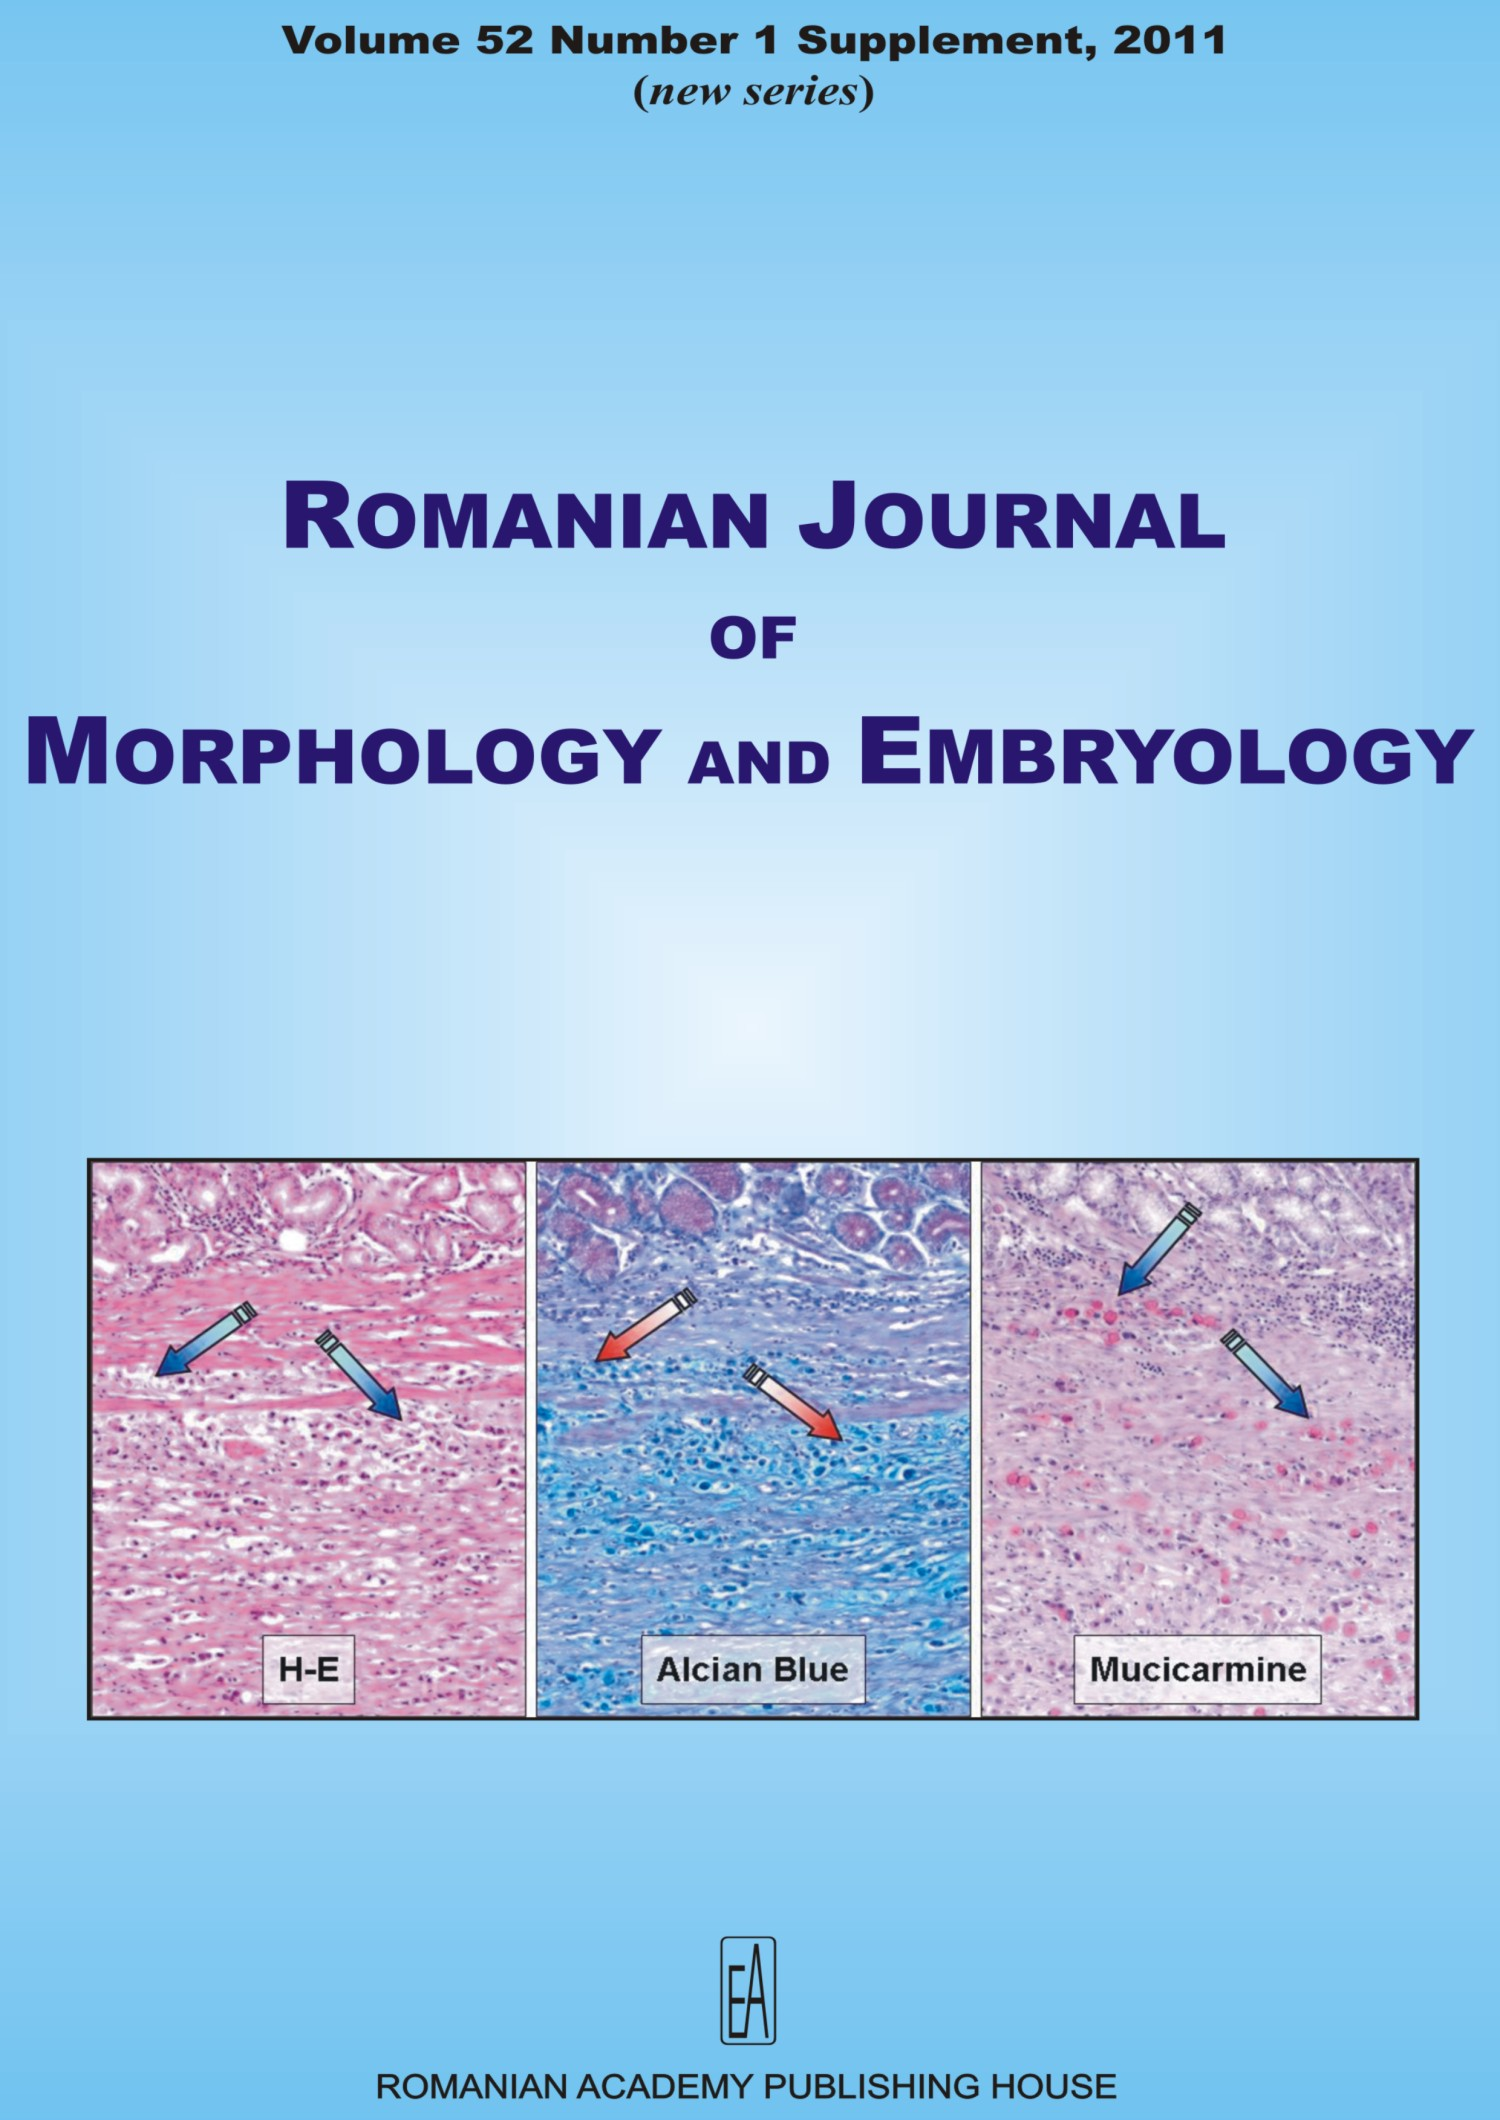 Romanian Journal of Morphology and Embryology, vol. 52 no. 1Suppl, 2011